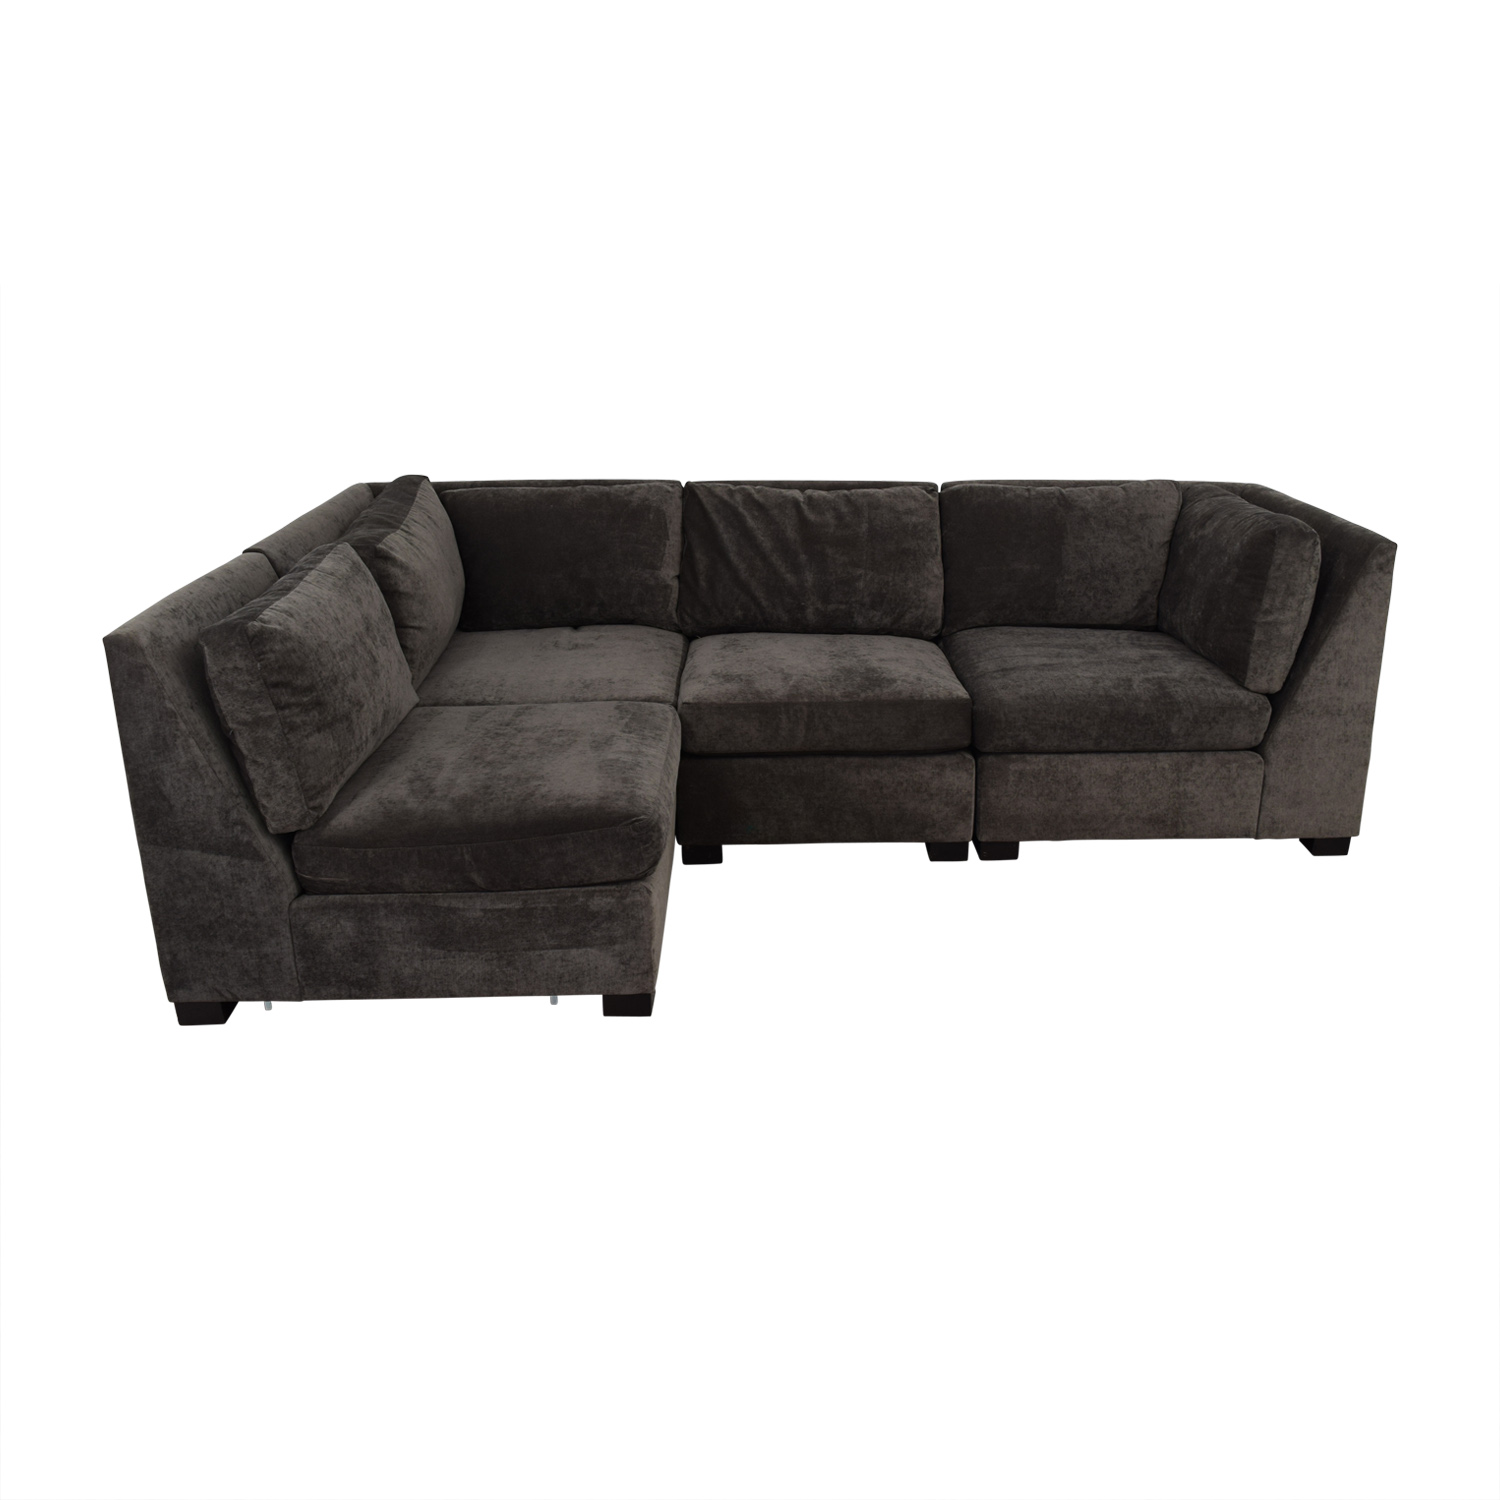 Bernhardt Bernhardt Adriana Grey Sectional price